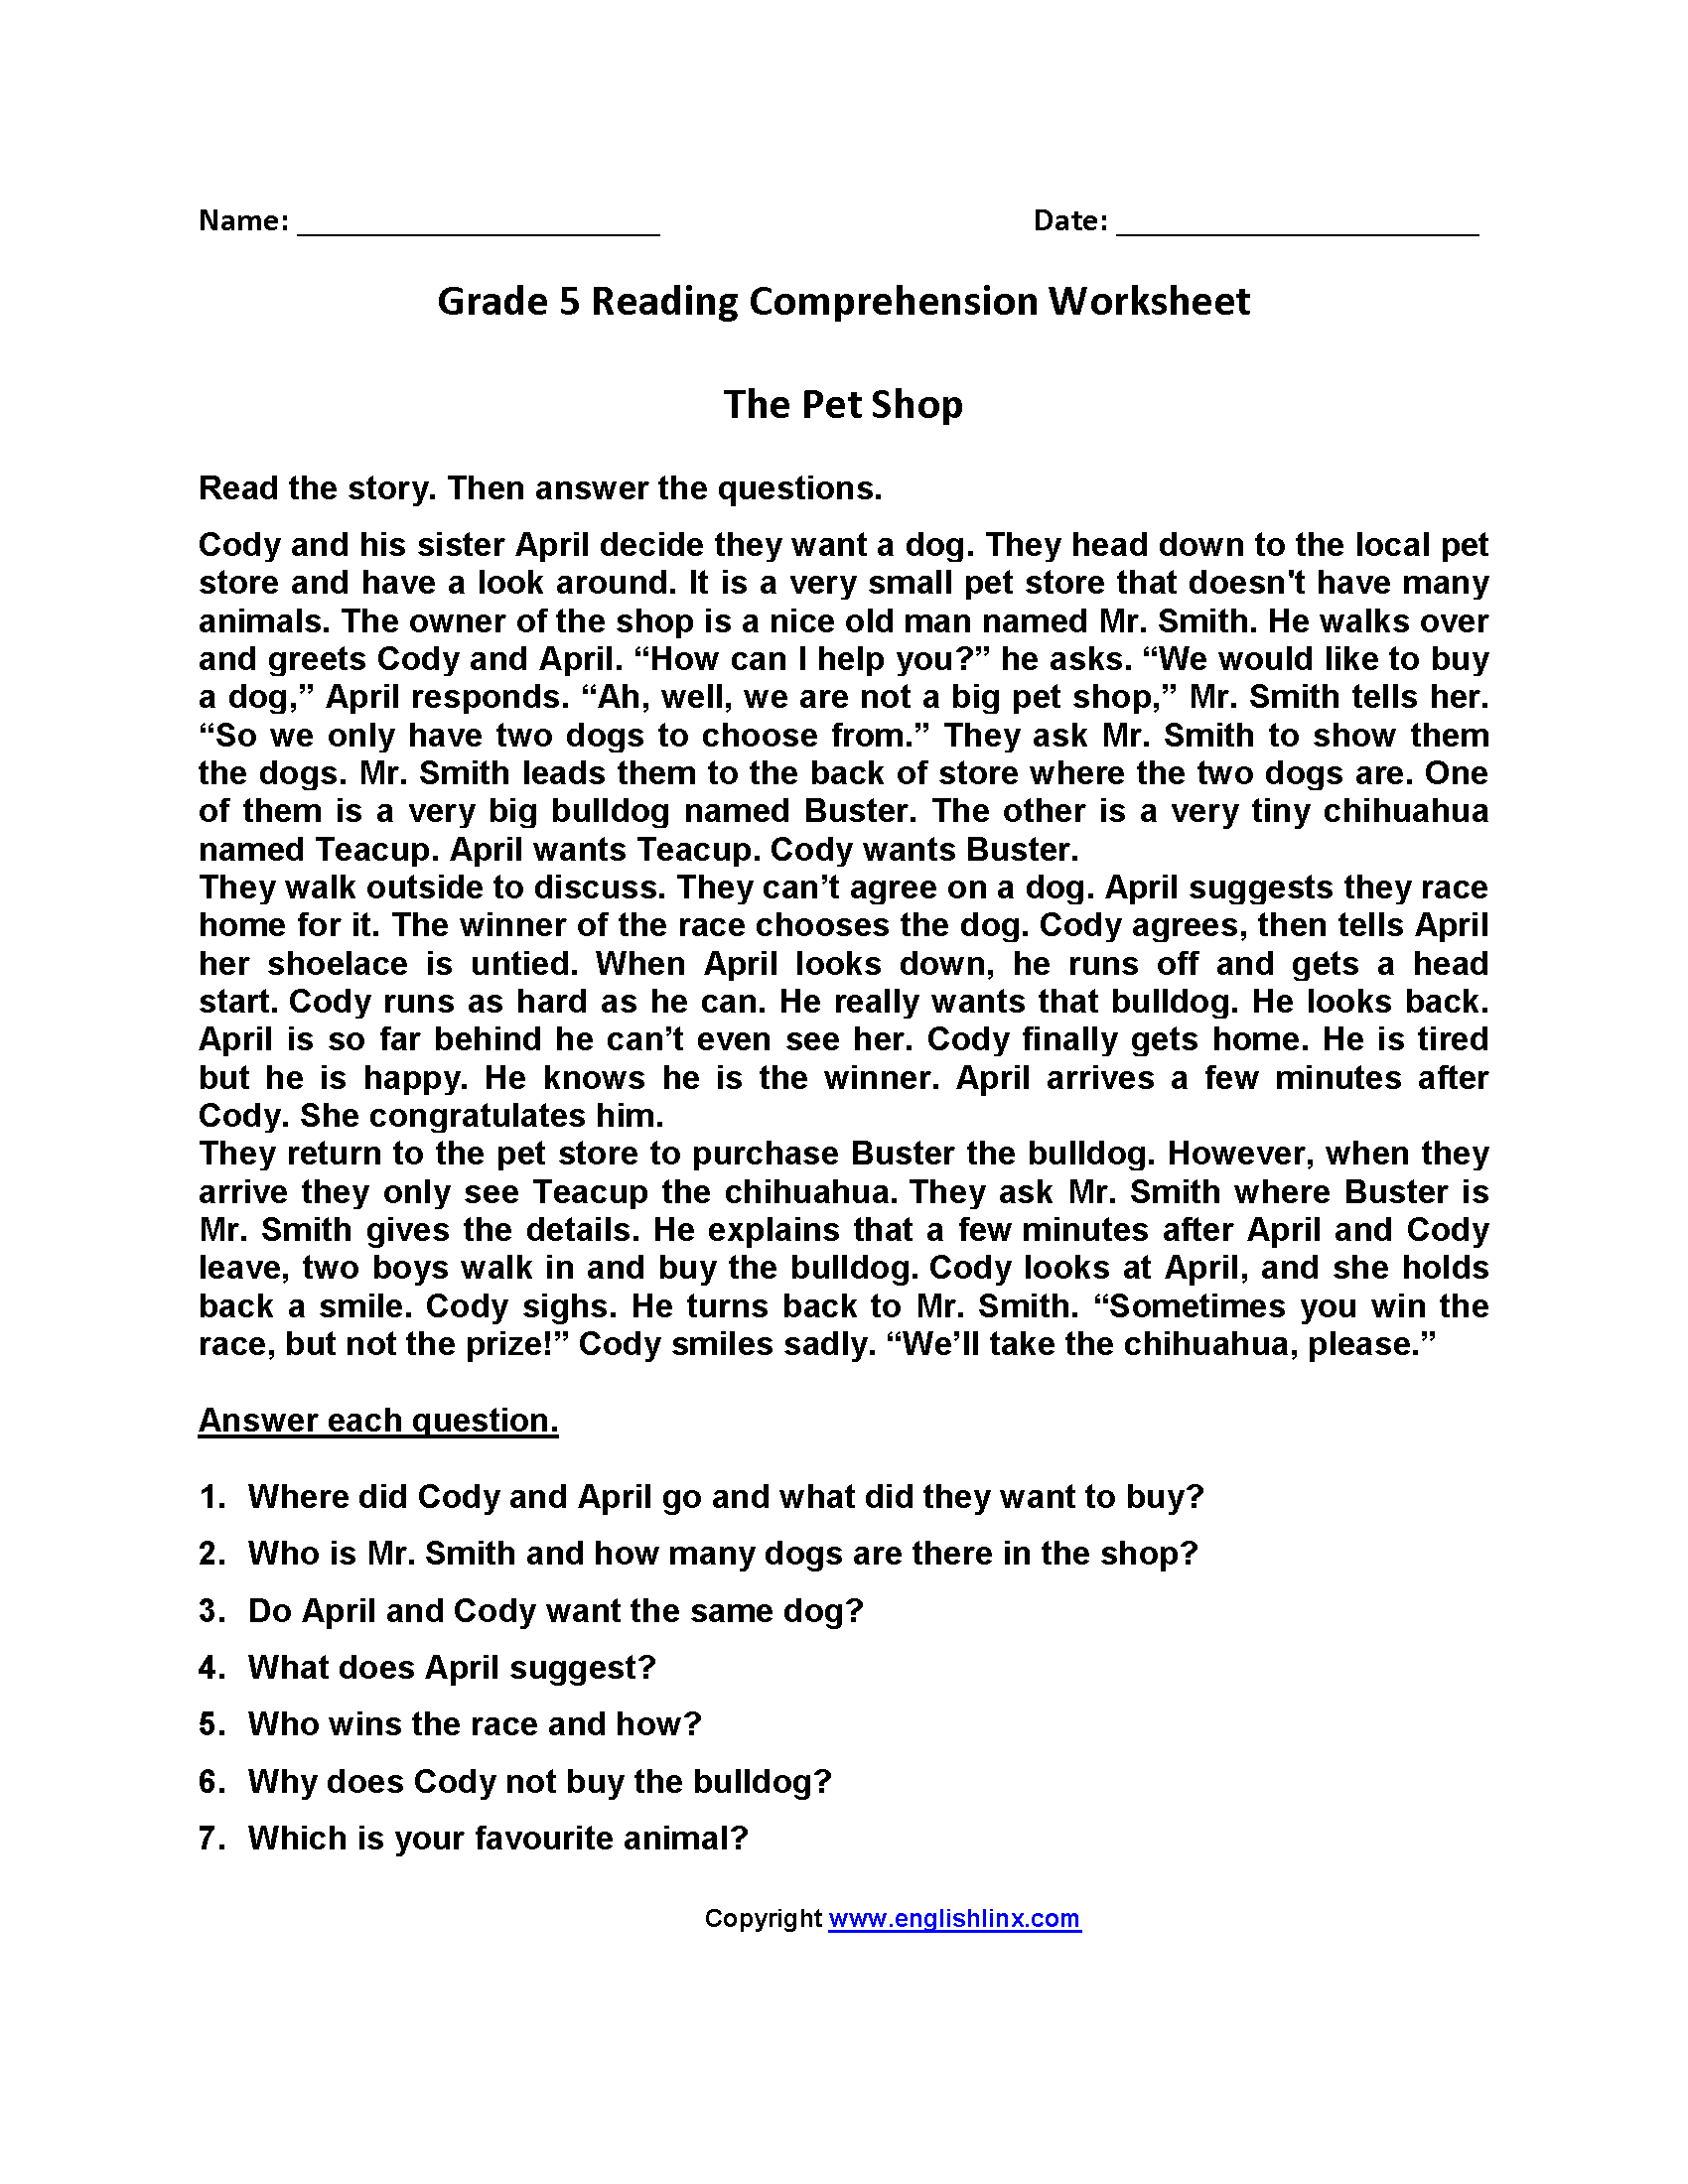 Comprehension Passages For Grade 5 With Questions And Answers